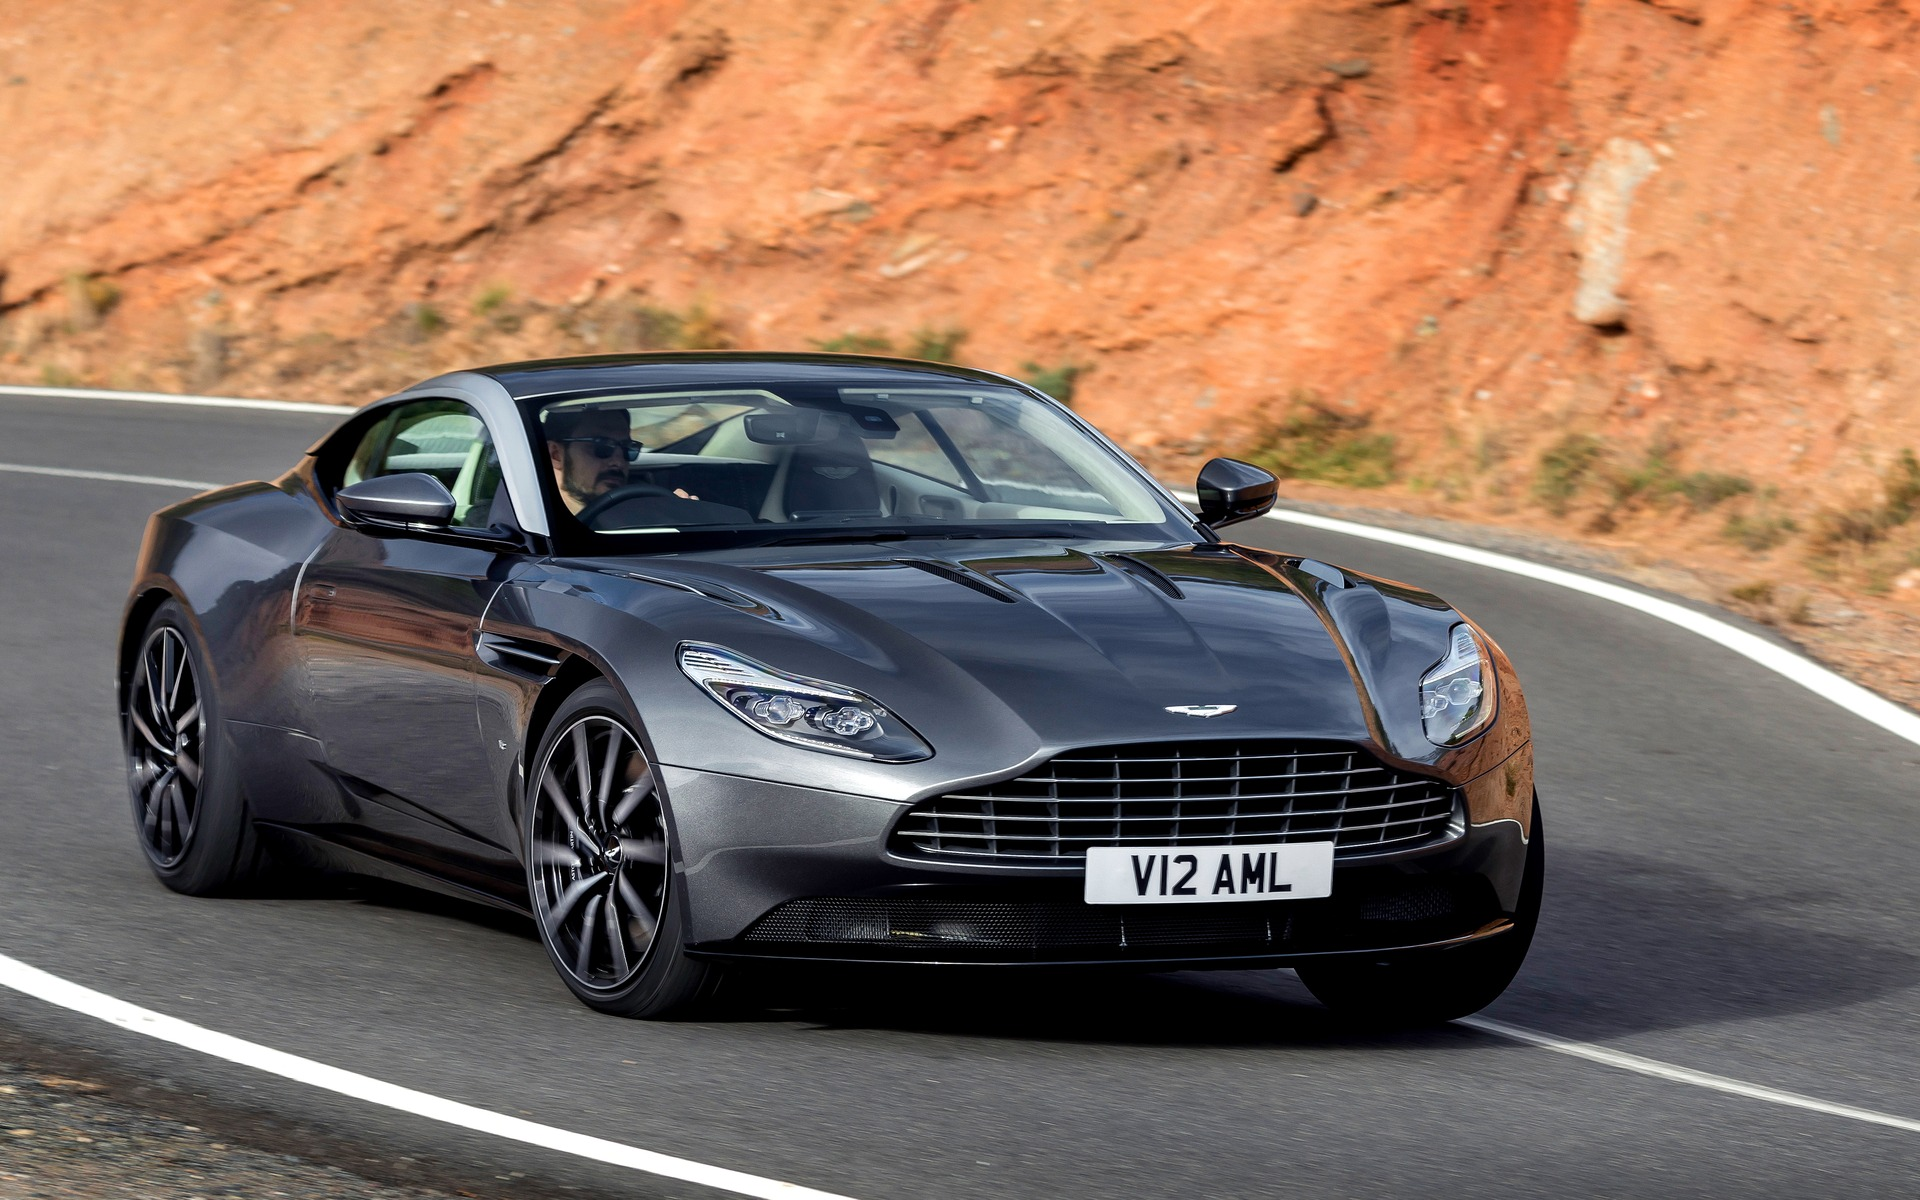 2017 aston martin db11 - news, reviews, picture galleries and videos